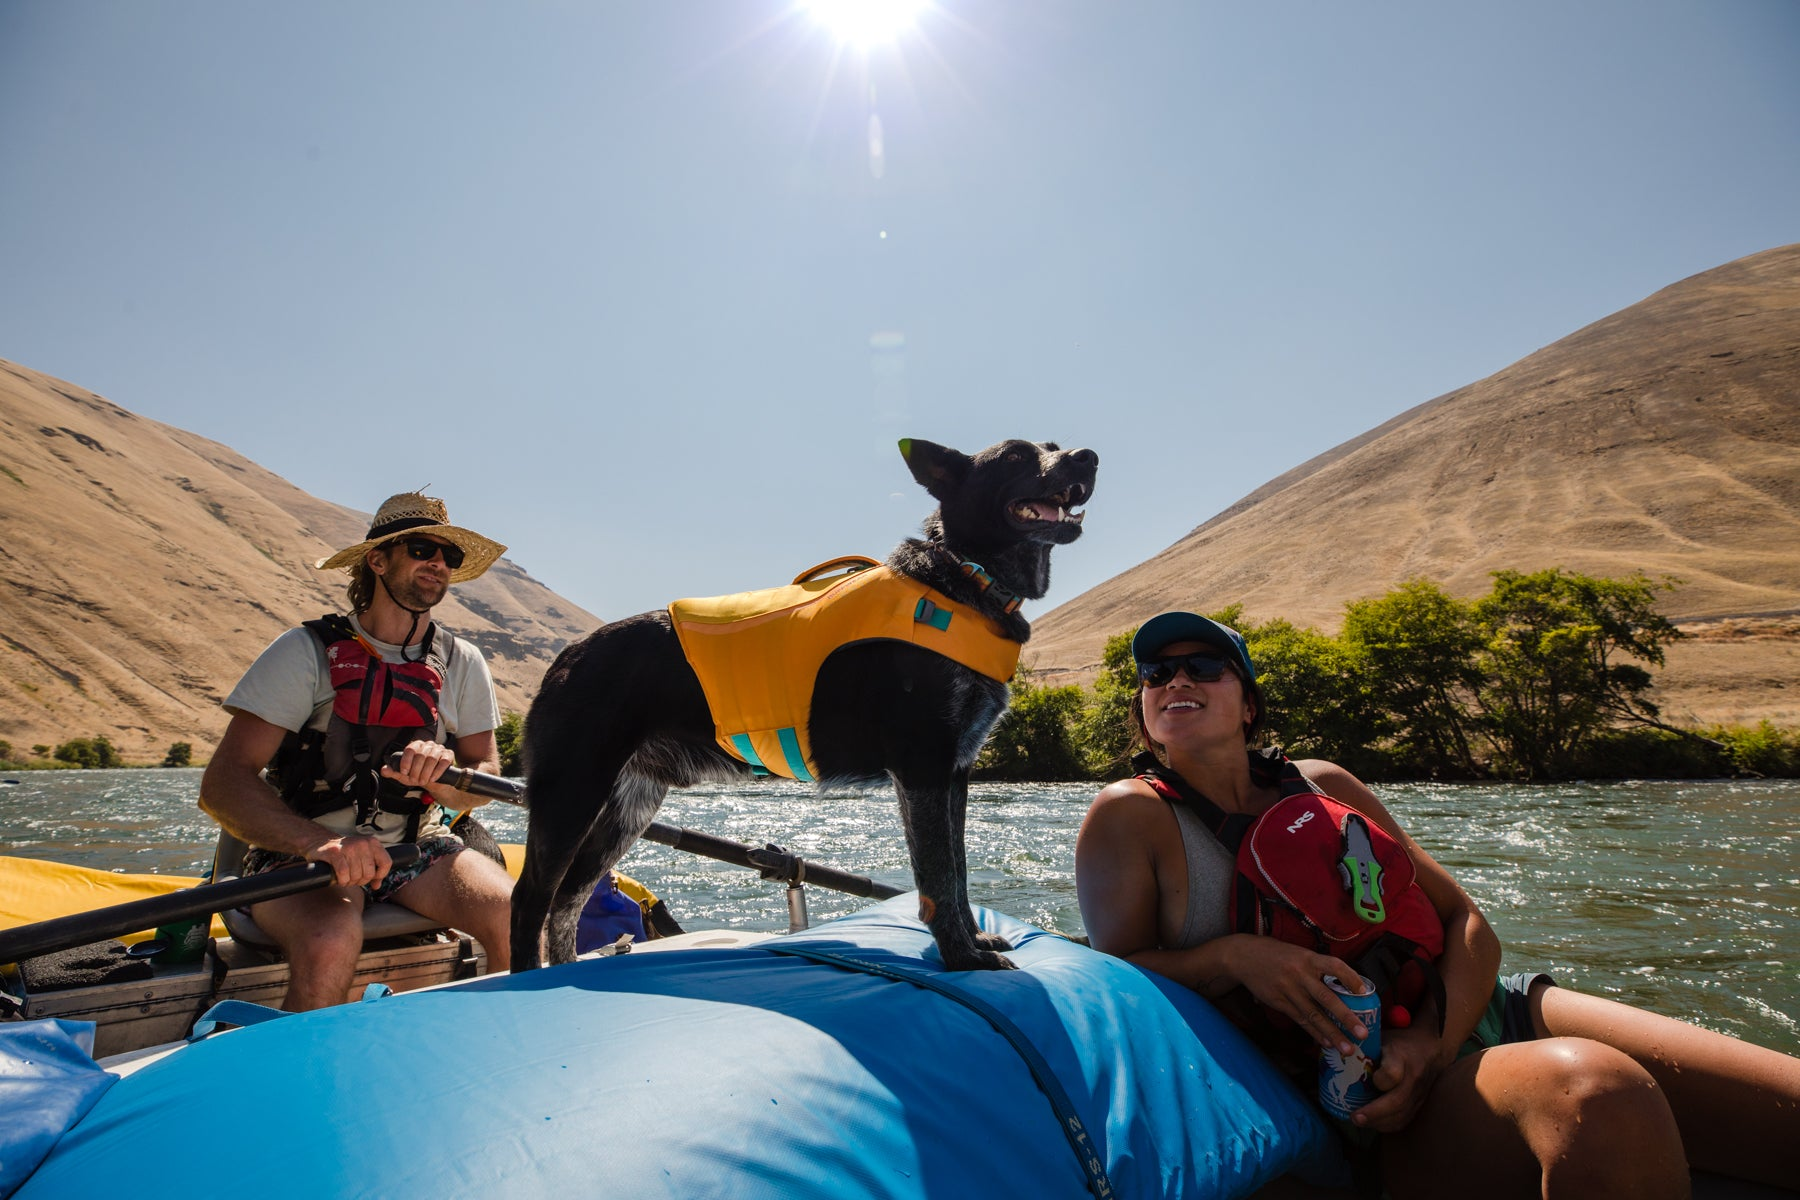 Bernie in float coat dog life jacket stands majestically in center of raft.